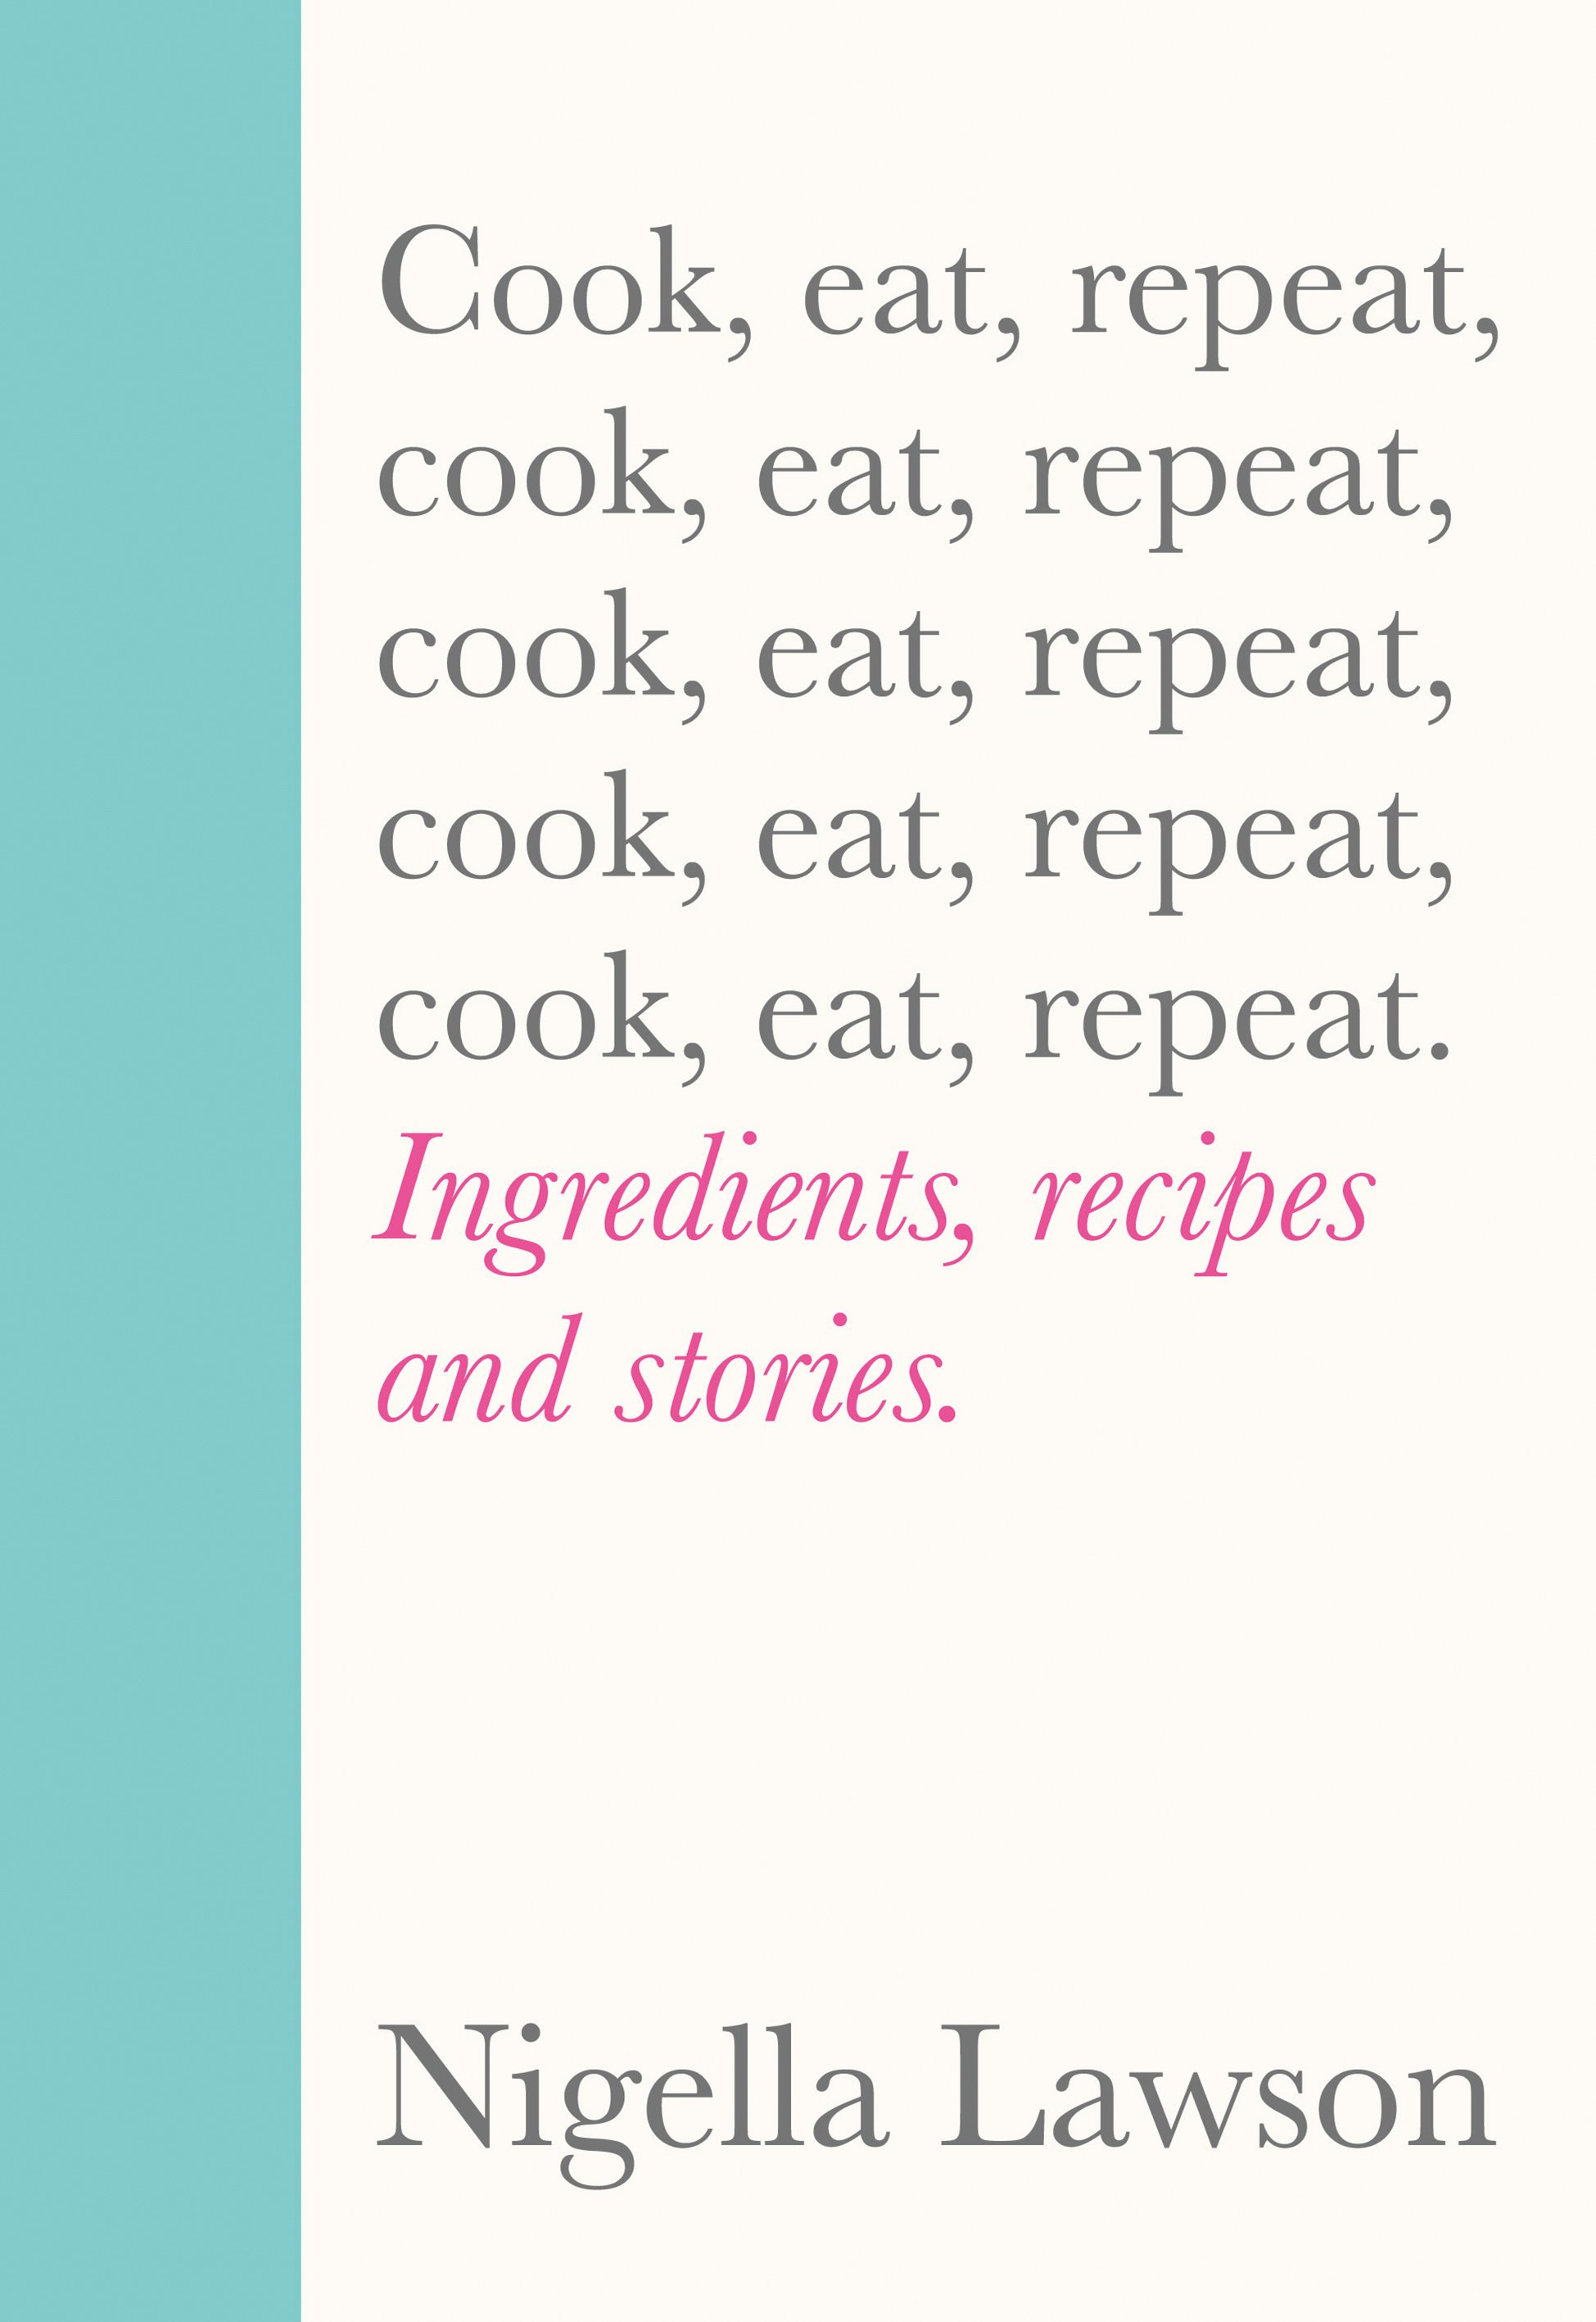 Cover image of Cook, Eat, Repeat by Nigella Lawson